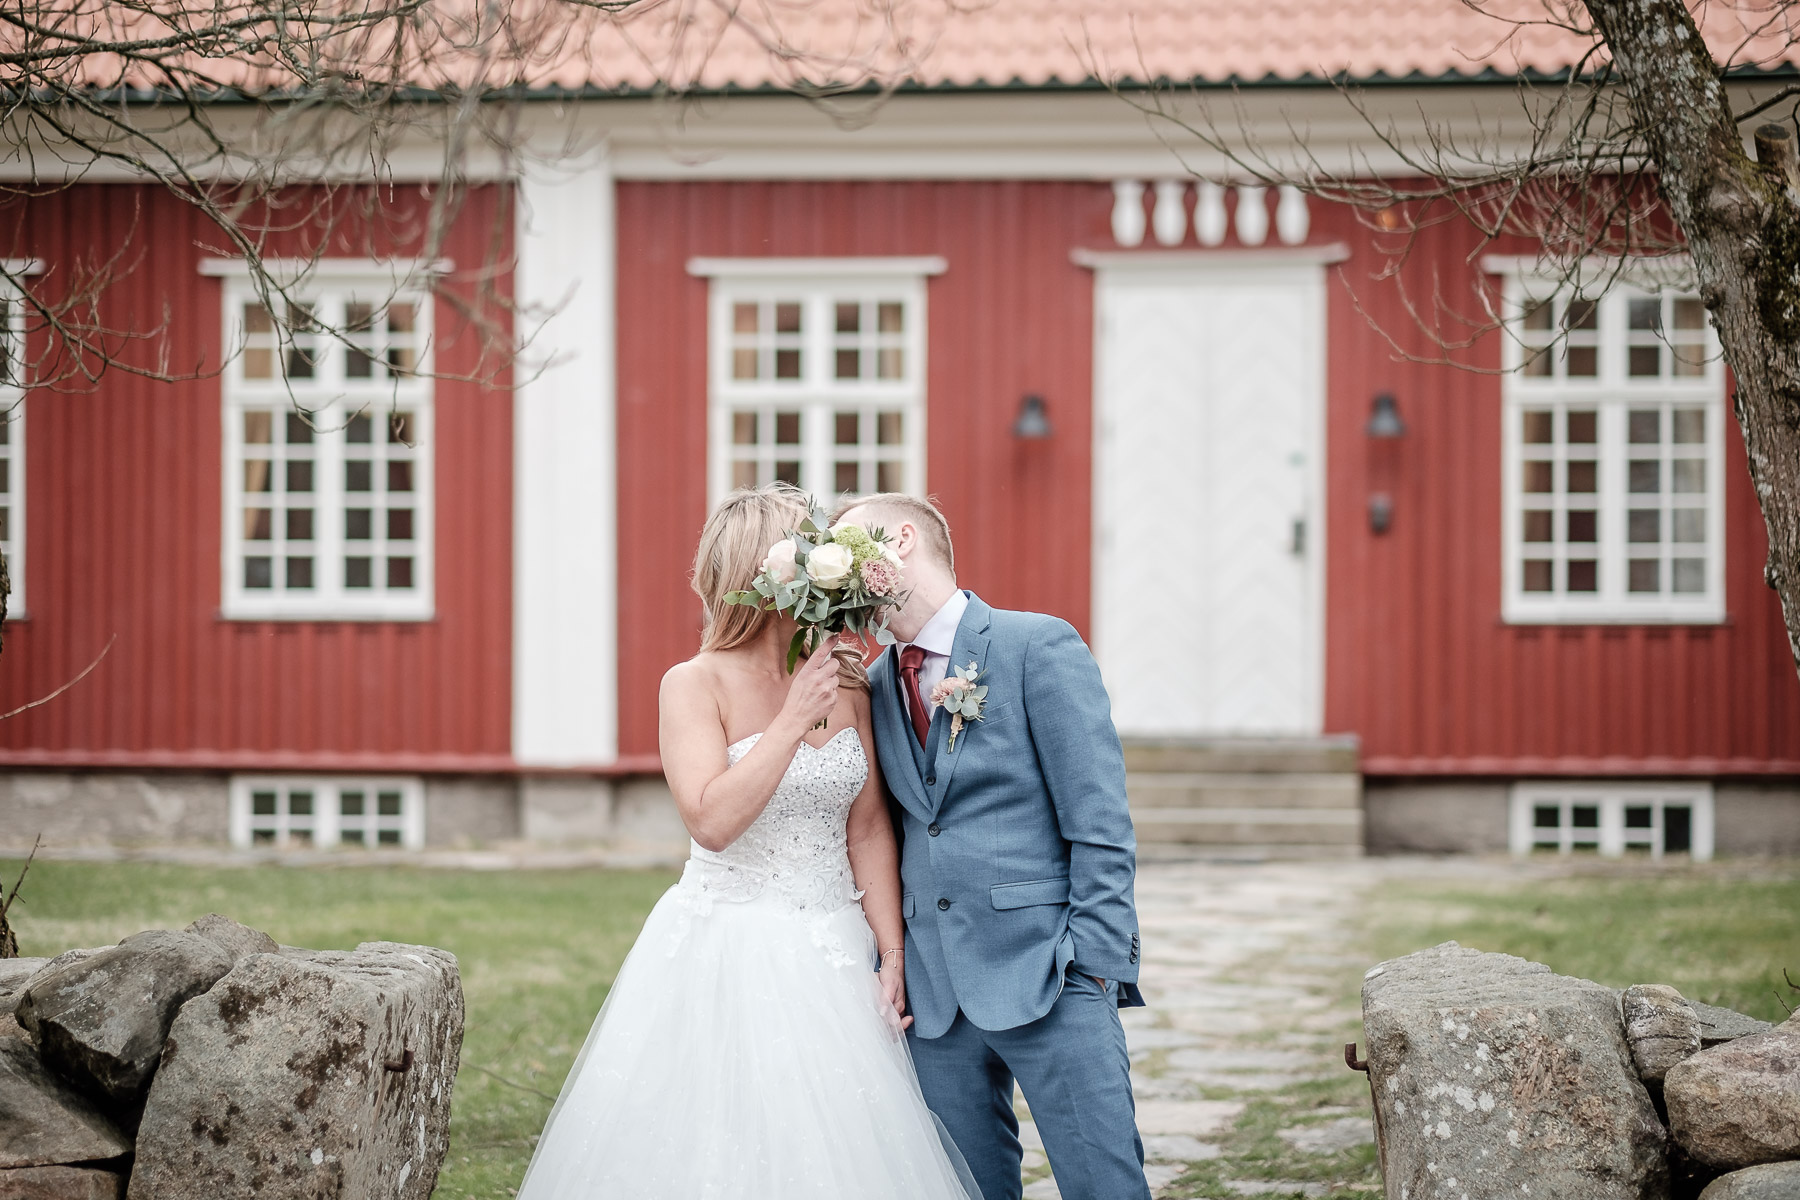 Click to enlarge image jeanette-fredrik-tanumshede-ottossonphoto-1015.jpg